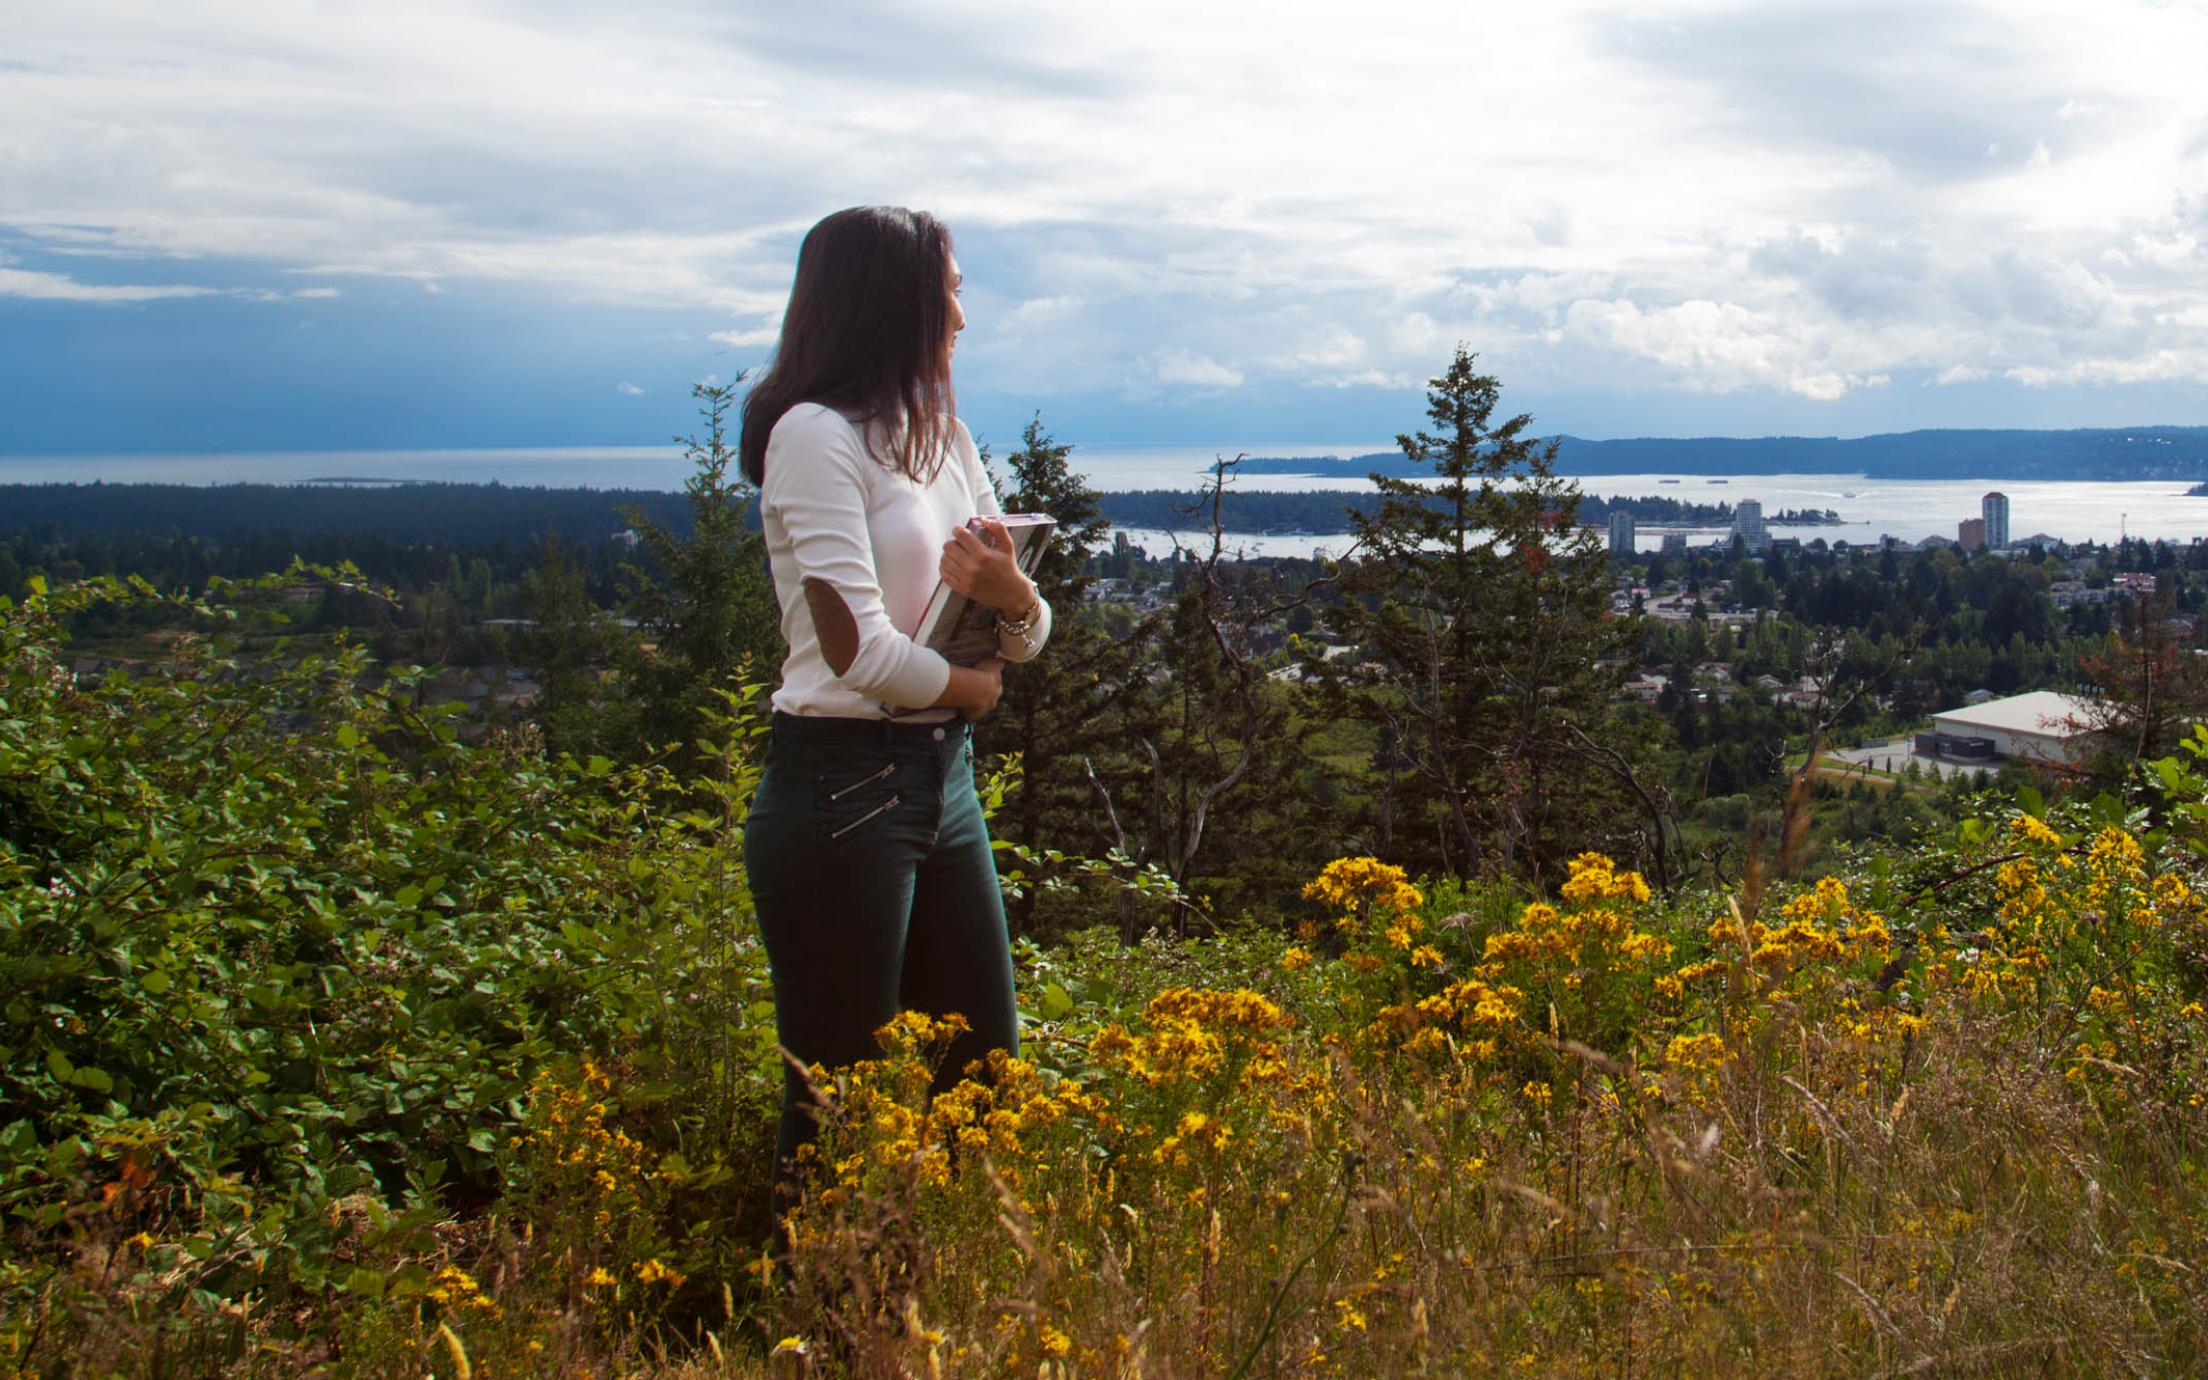 A Student of the courses in humanities study program is enjoying Vancouver Island's beauty